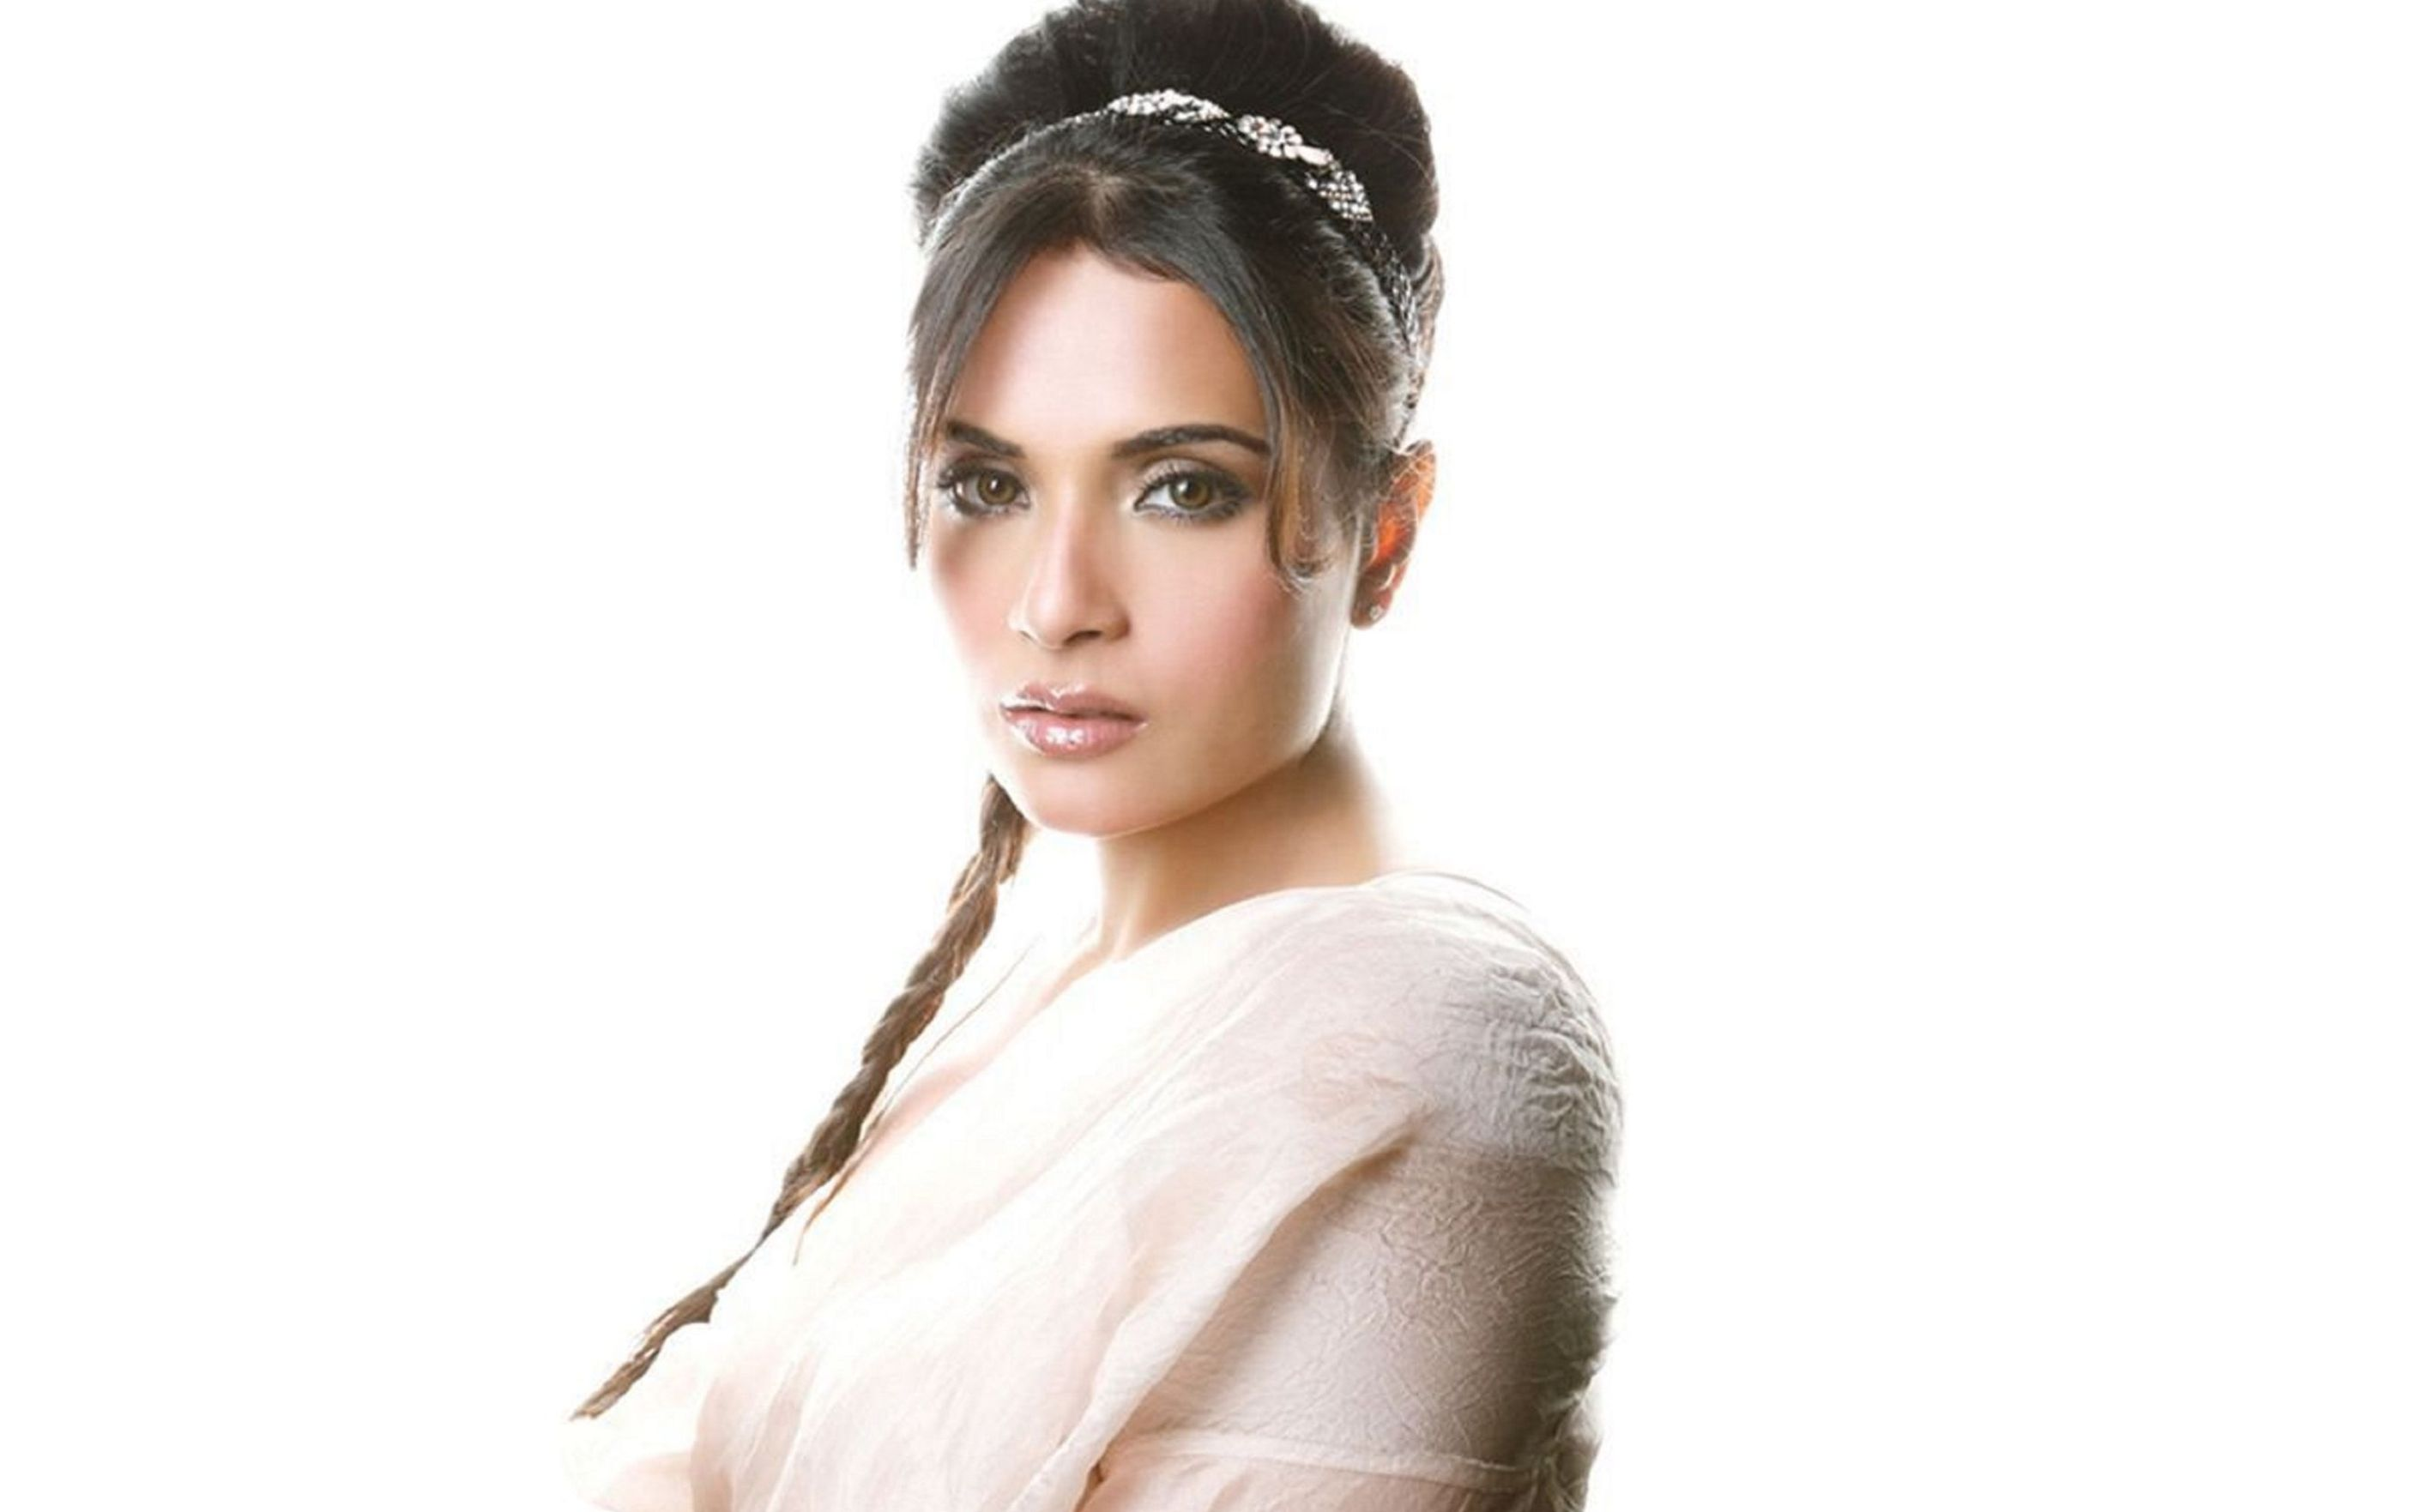 Download free HD Beautiful Richa Chadda Images Wallpaper, image